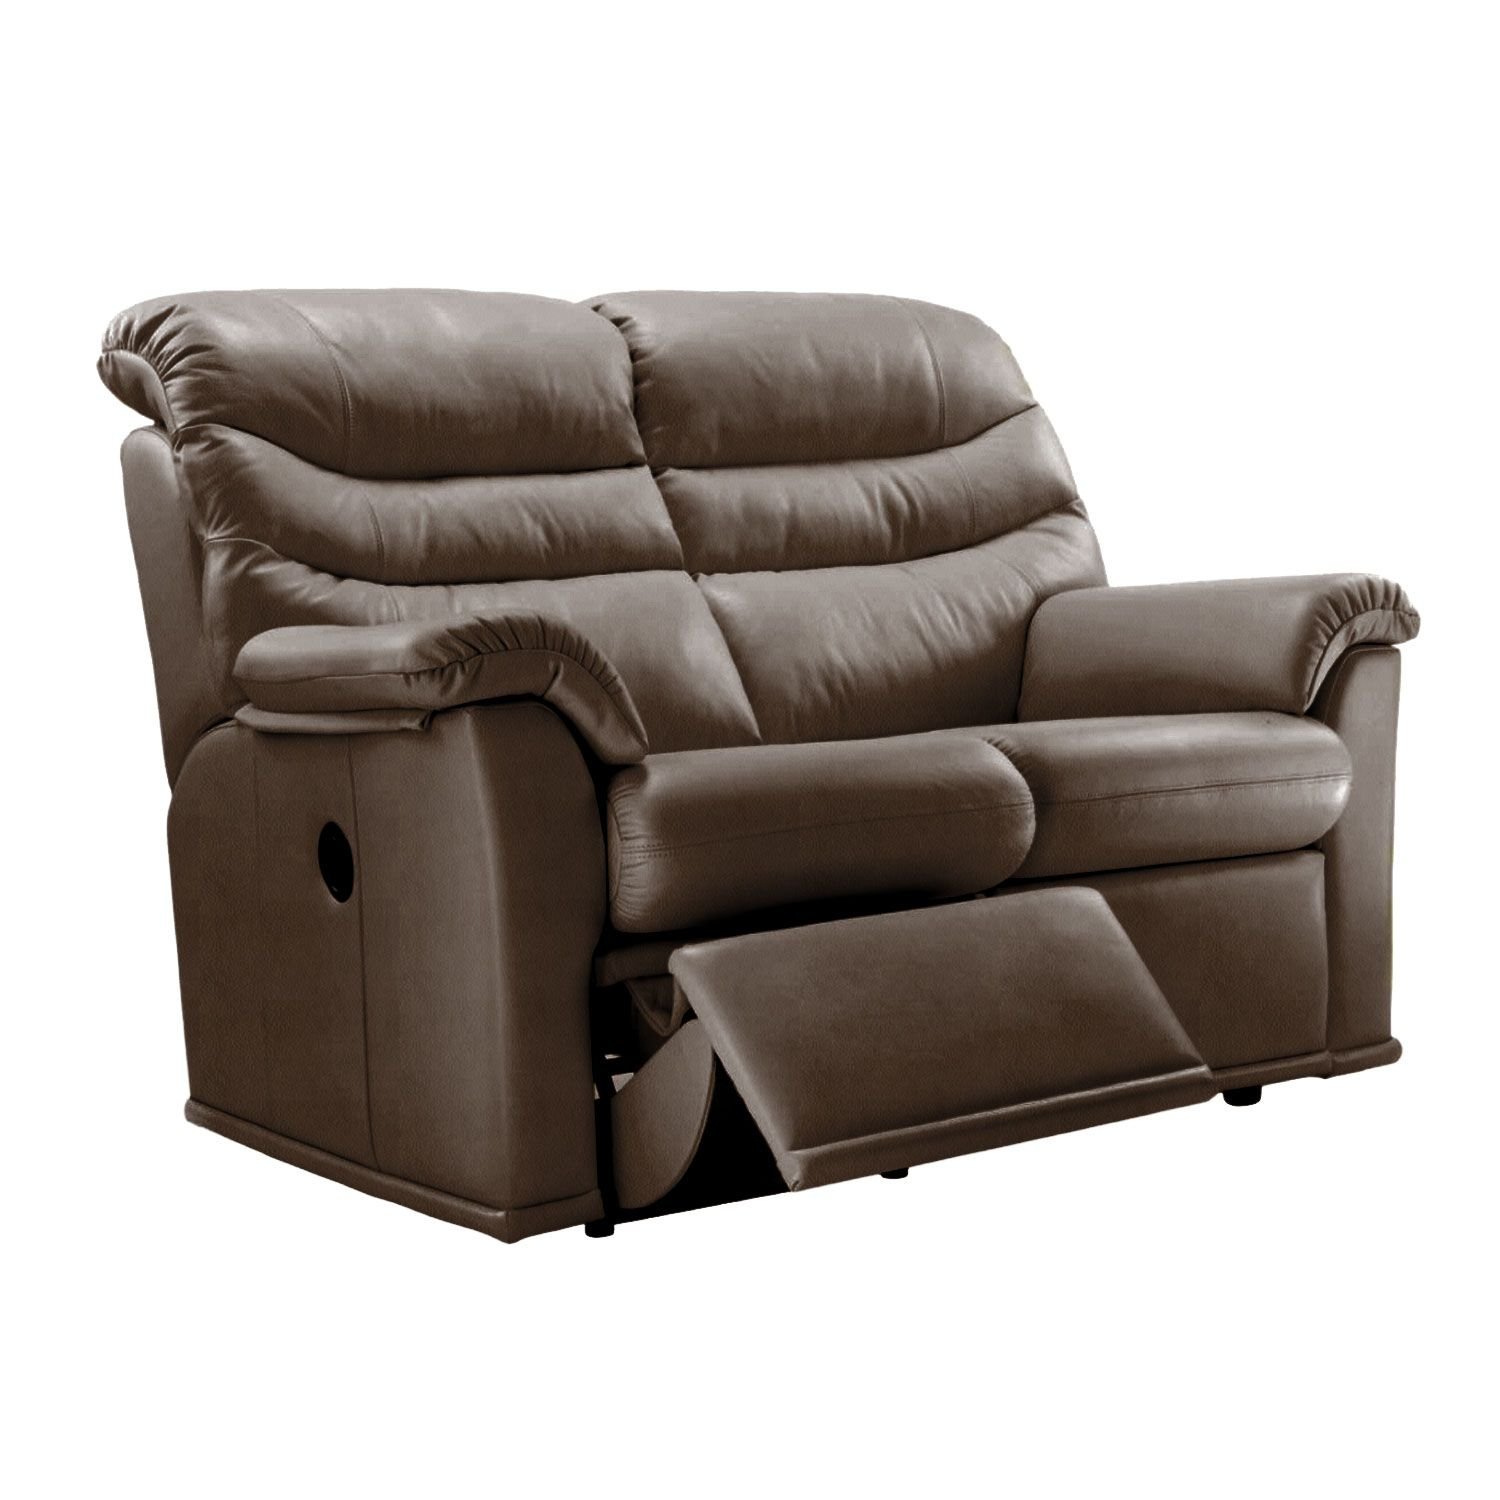 G Plan Malvern 17 2 Seater Left Power Recliner Leather Sofa